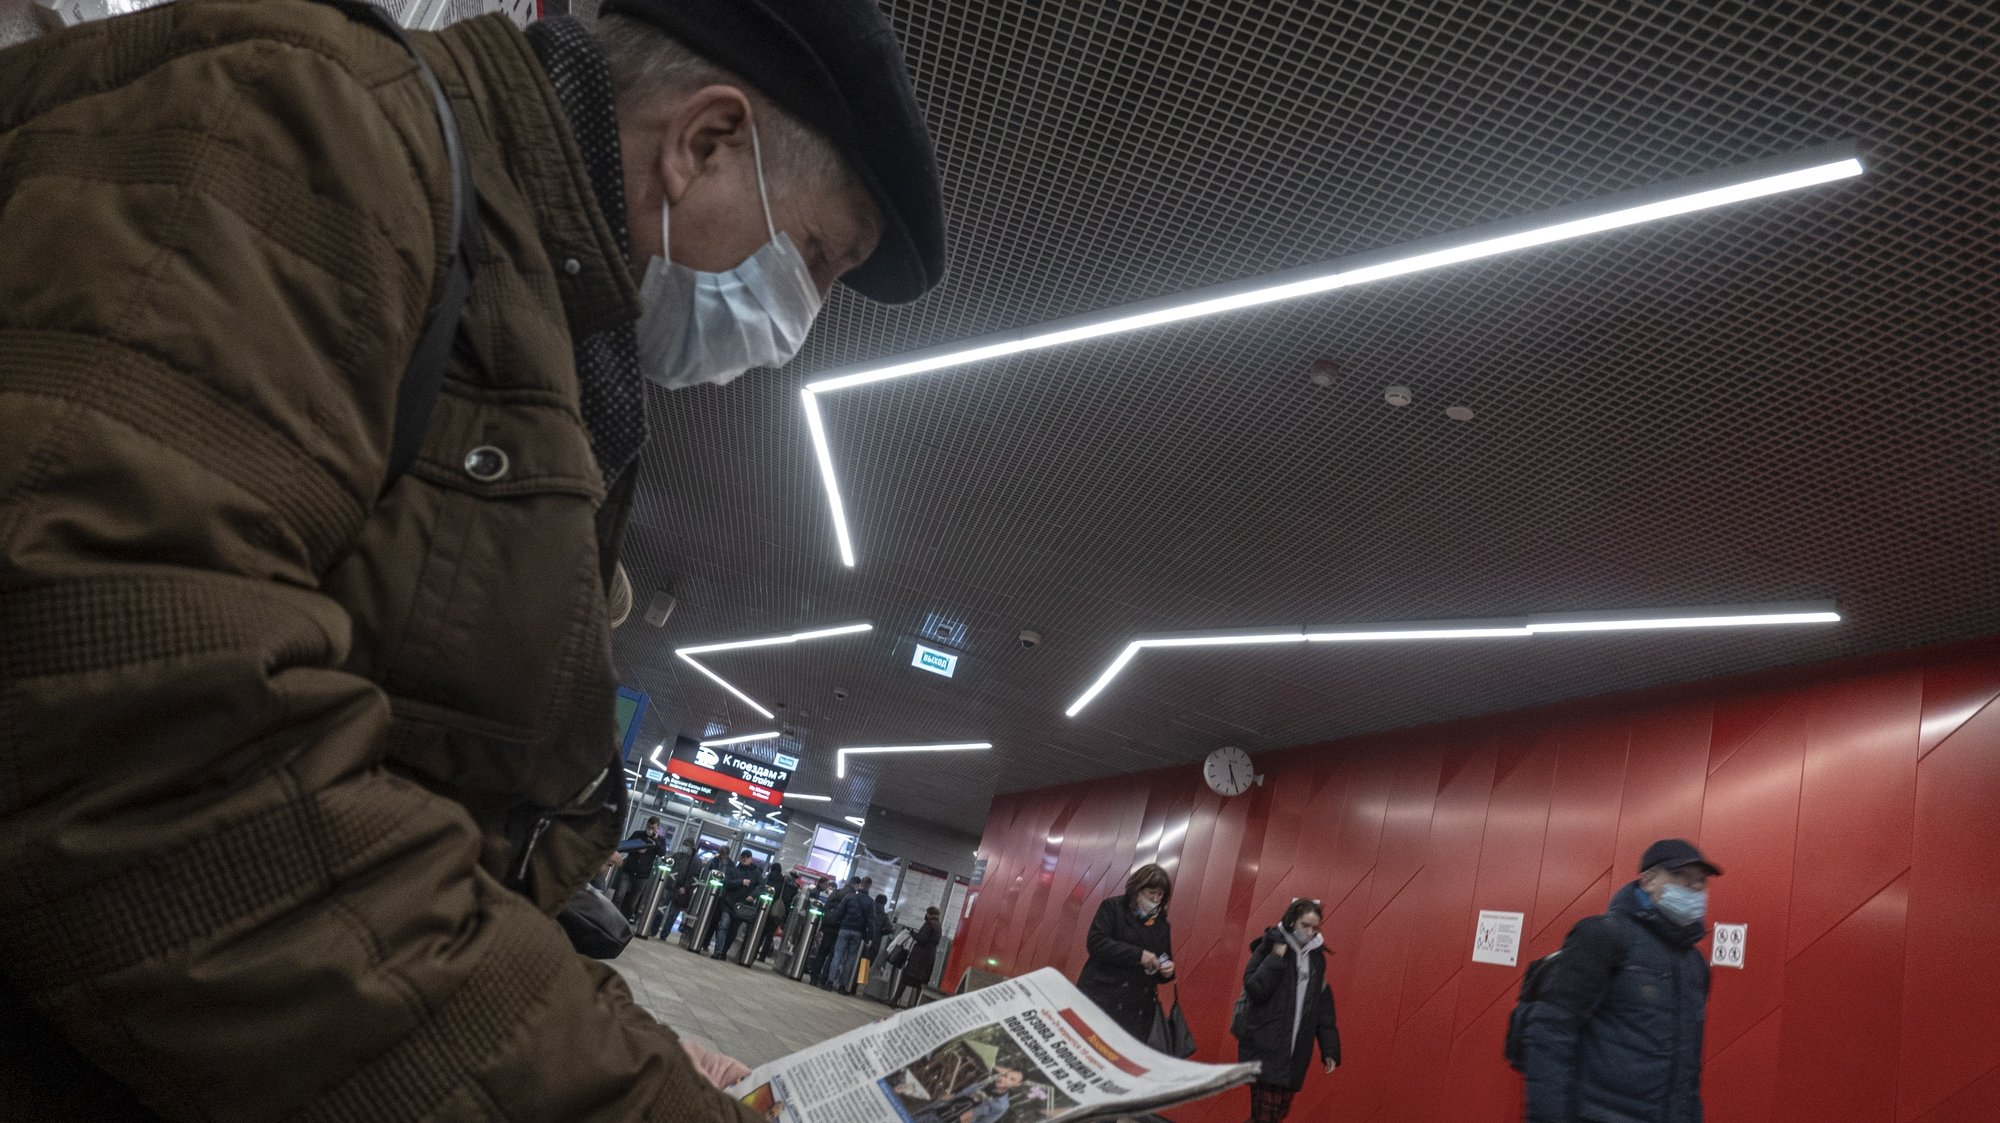 epa09117150 A man wearing a protective face mask reads a newspaper in a station of Moscow metro, Russia, 05 April 2021, amid the COVID-19 coronavirus pandemic.  EPA/SERGEI ILNITSKY